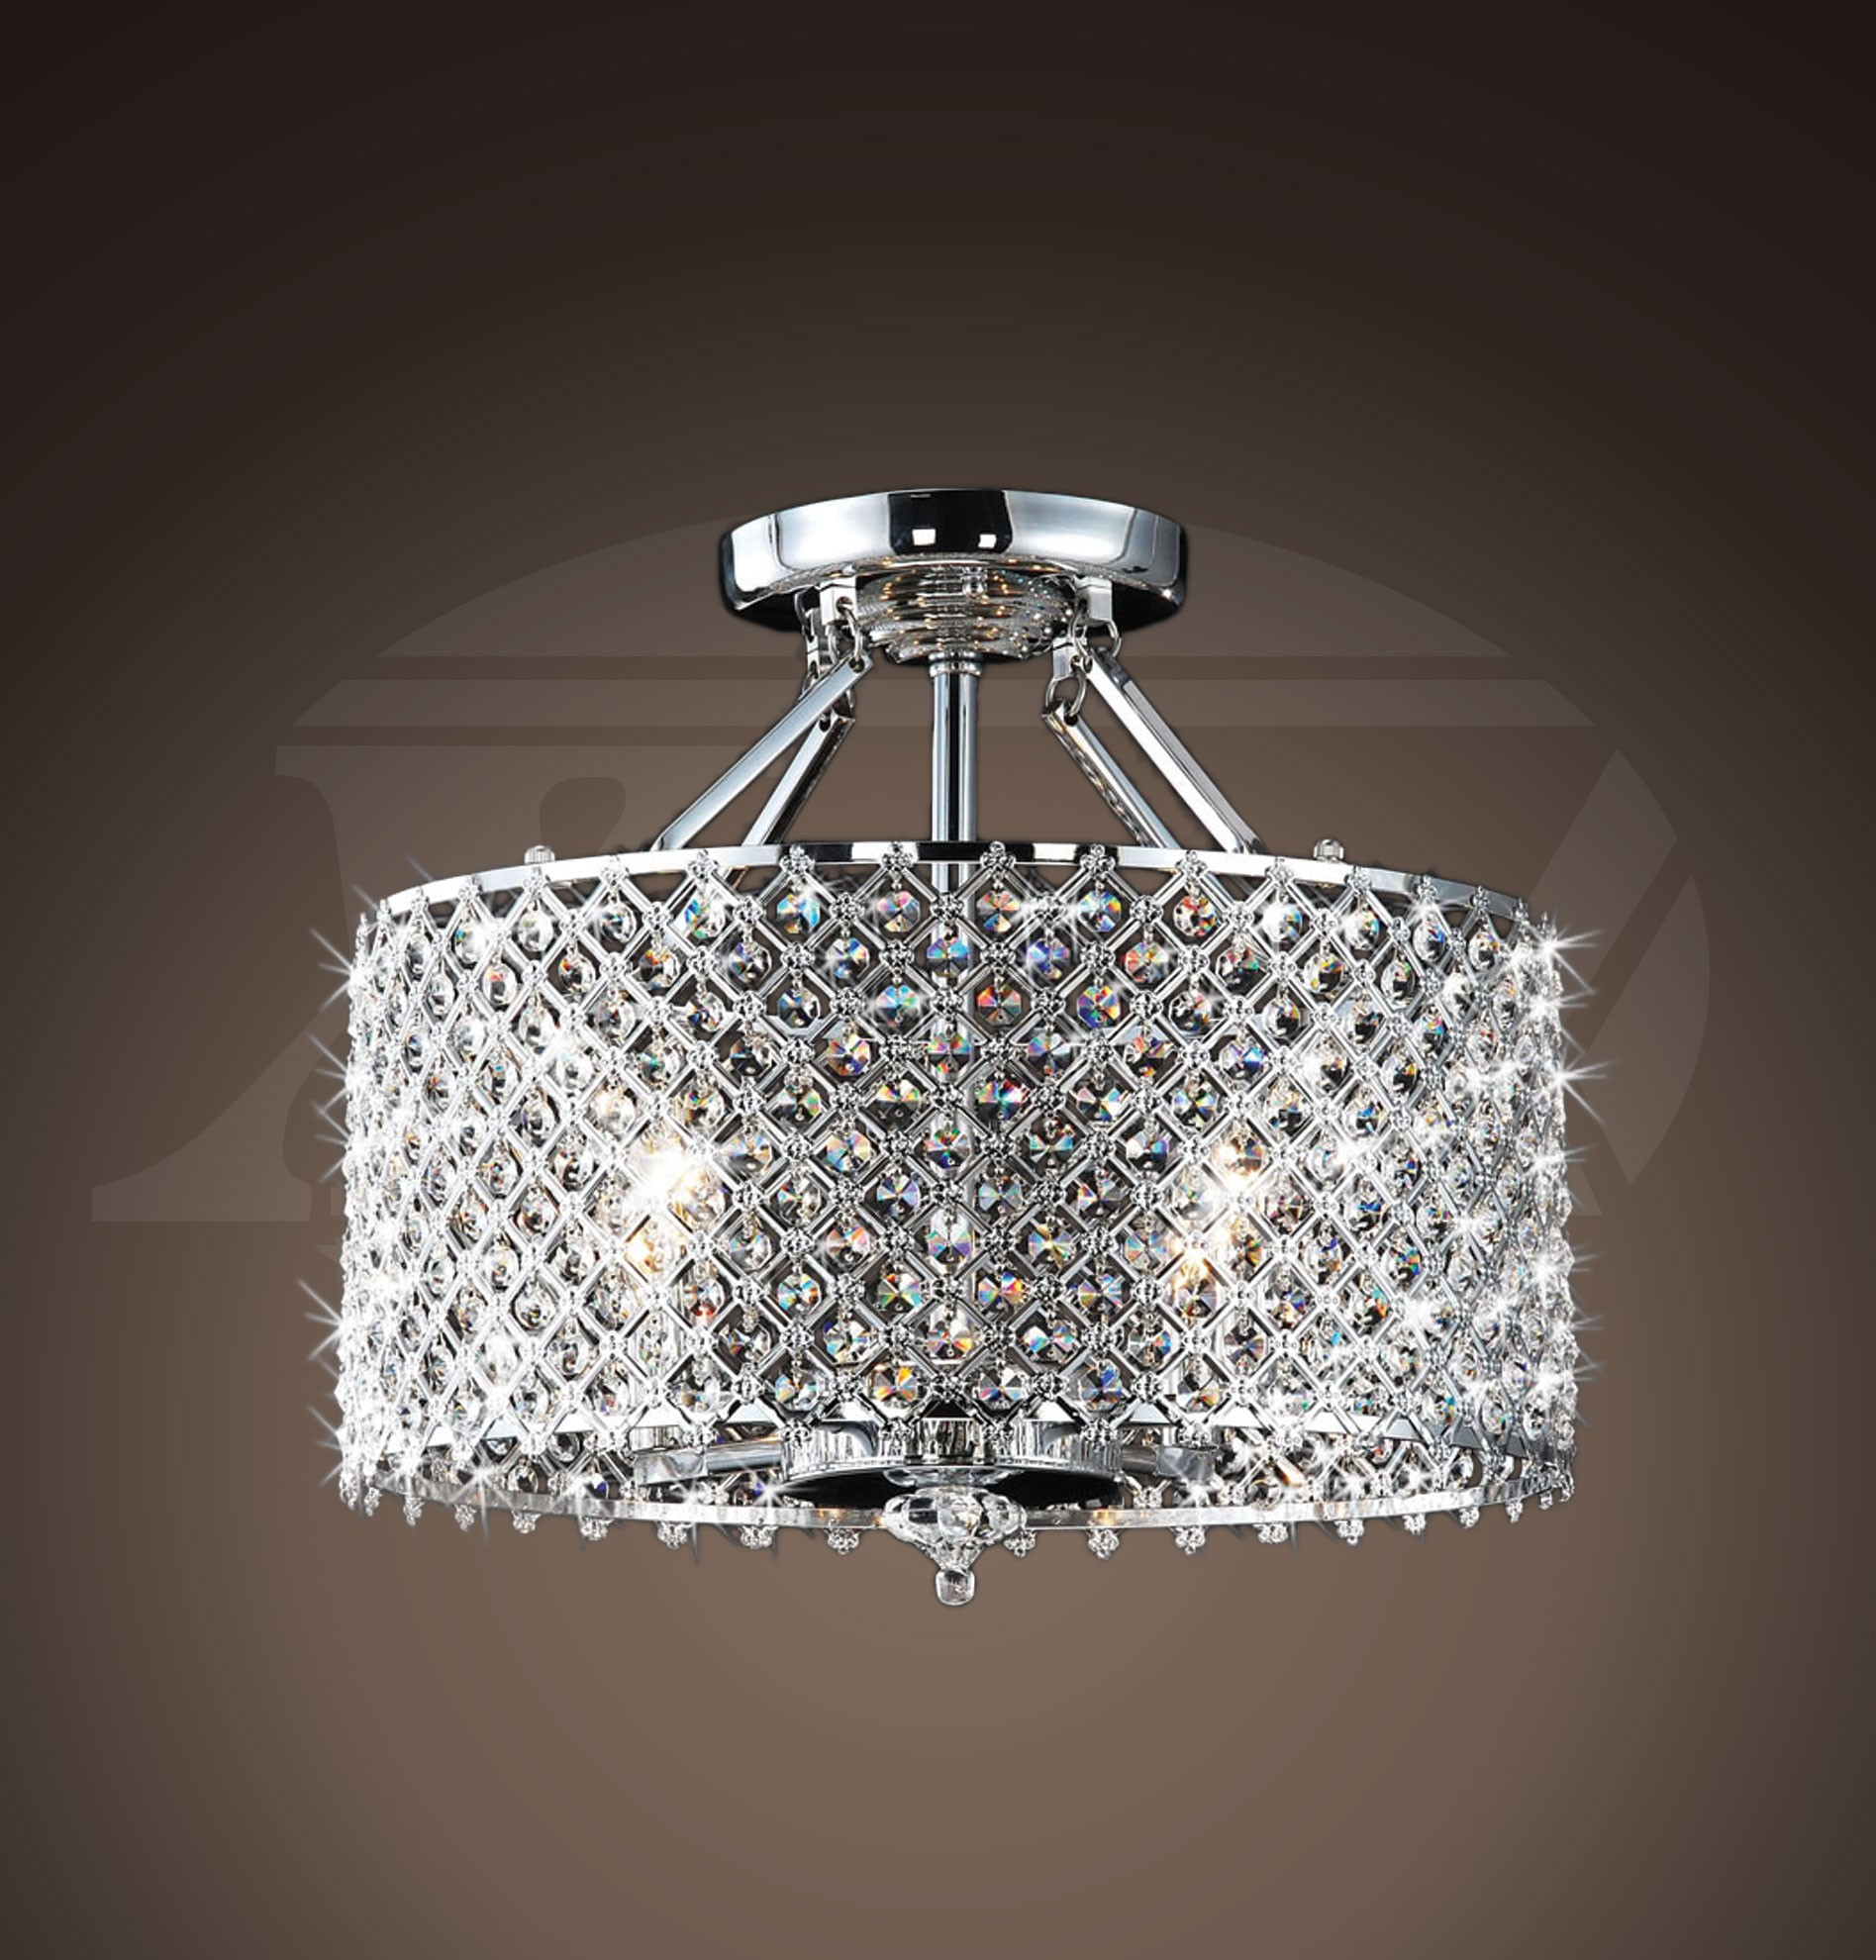 Soothing Crystal Round Ceiling Flush Mount Helina Chrome Crystal Round Ceiling Flush Mount Flush Mount Chandelier Pottery Barn Flush Mount Chandelier Light Helina Chrome houzz-03 Flush Mount Chandelier